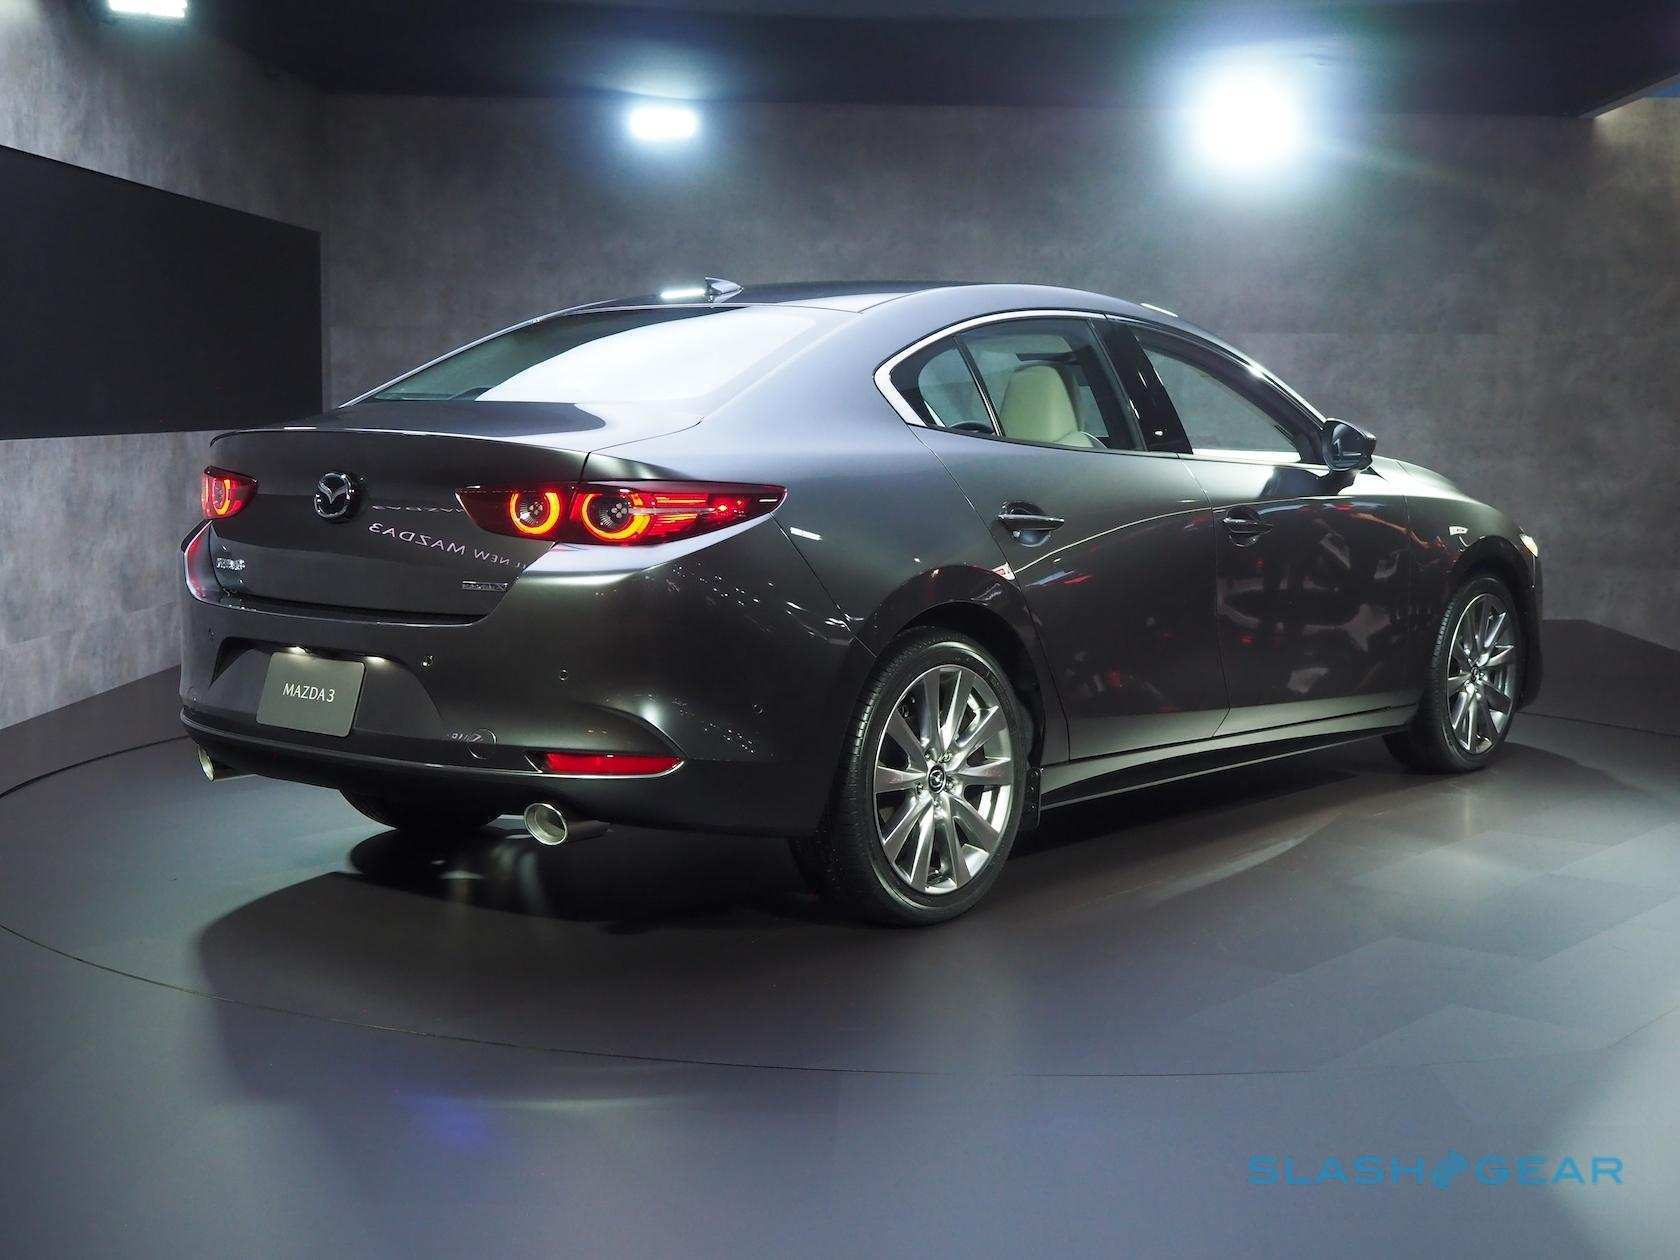 34 All New 2020 Mazda 3 Sedan Wallpaper